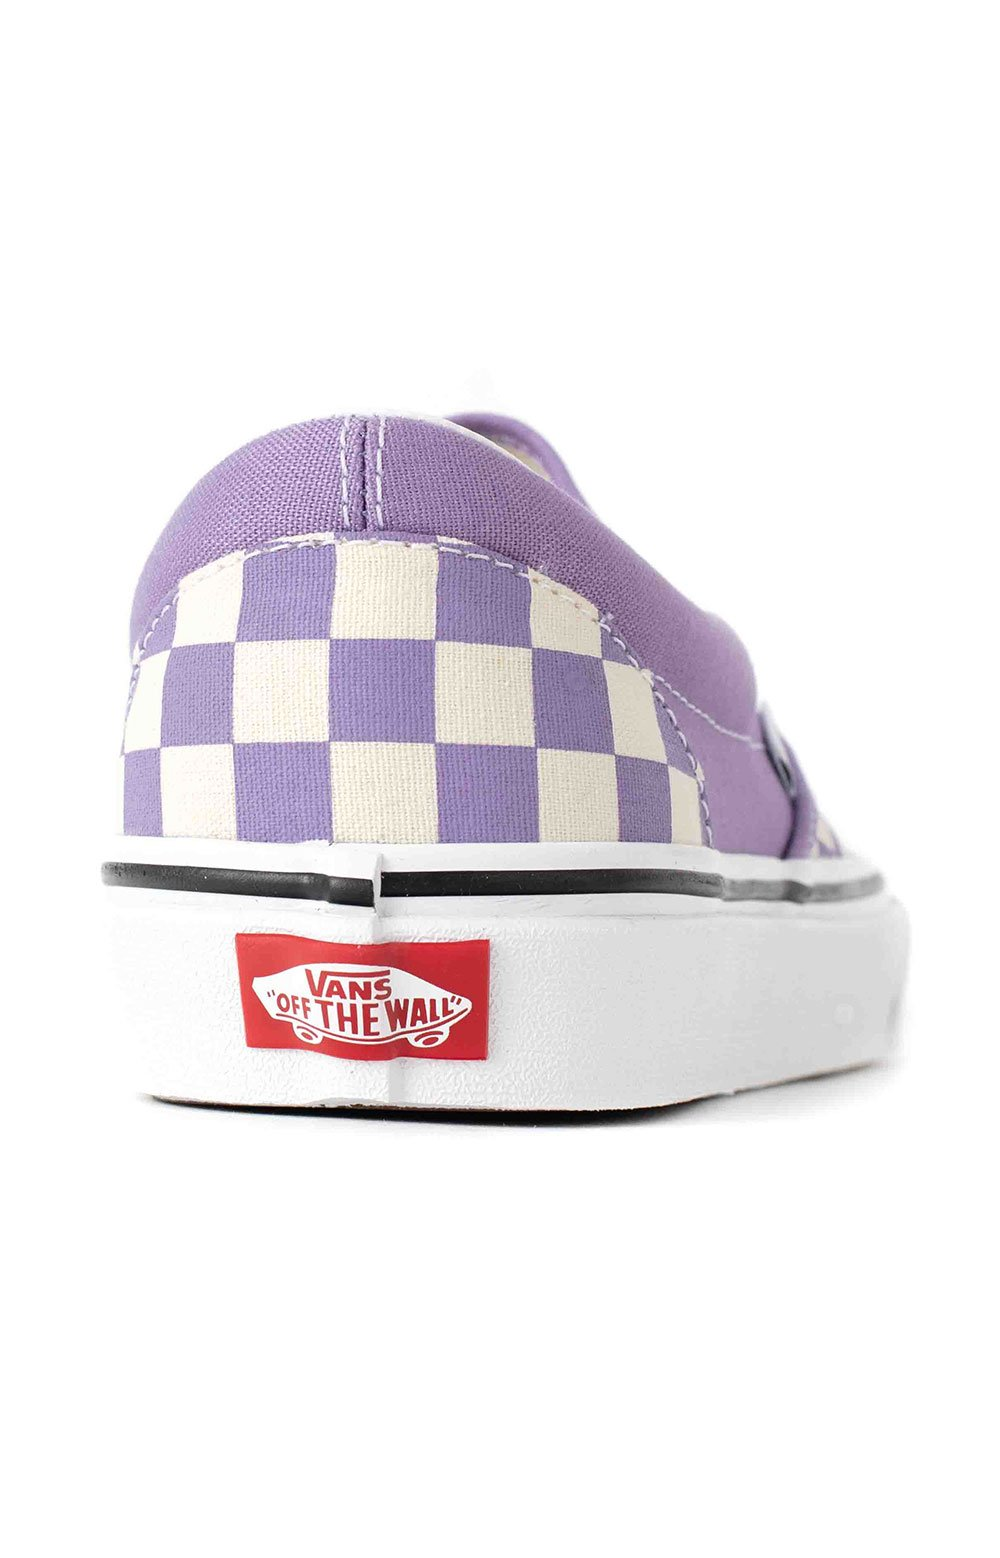 (3TB9HM) Checkerboard Classic Slip-On Shoes - Chalk Violet  5